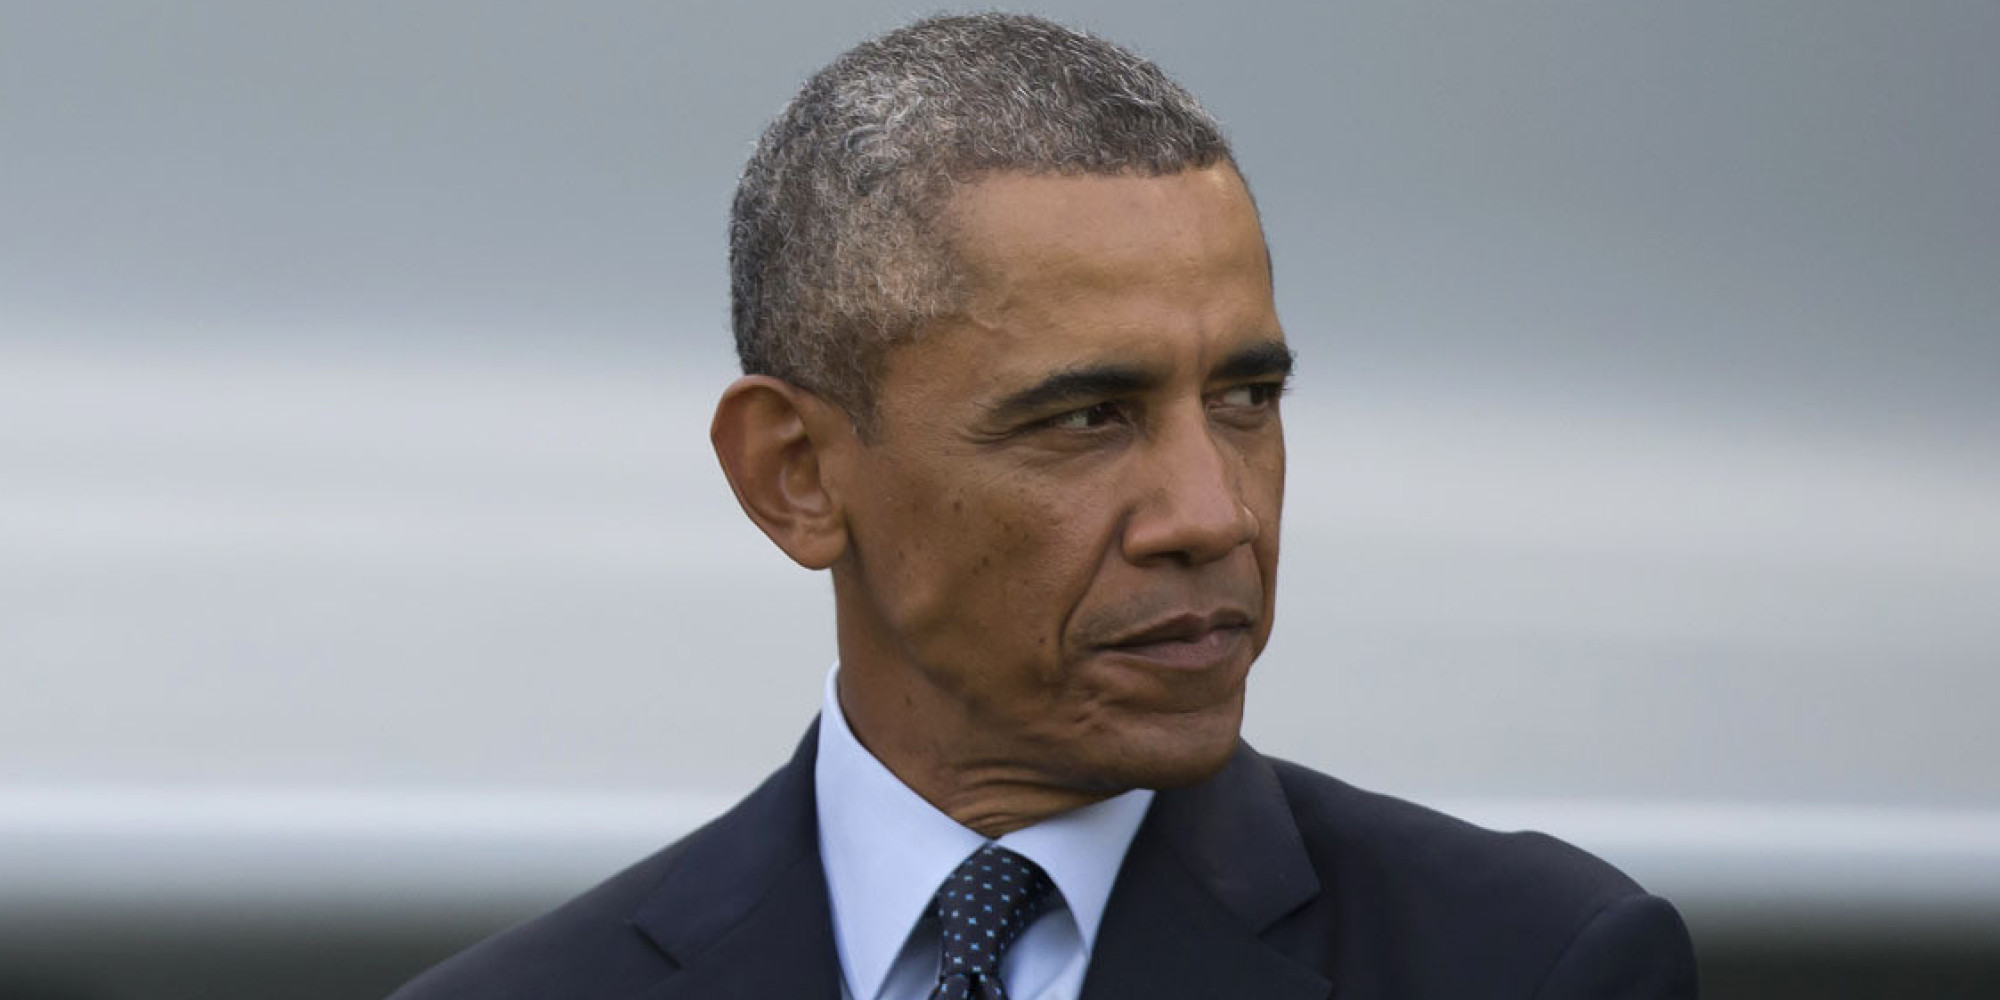 Obama Was 'Shocked' By Ray Rice Video, Aide Says   HuffPost